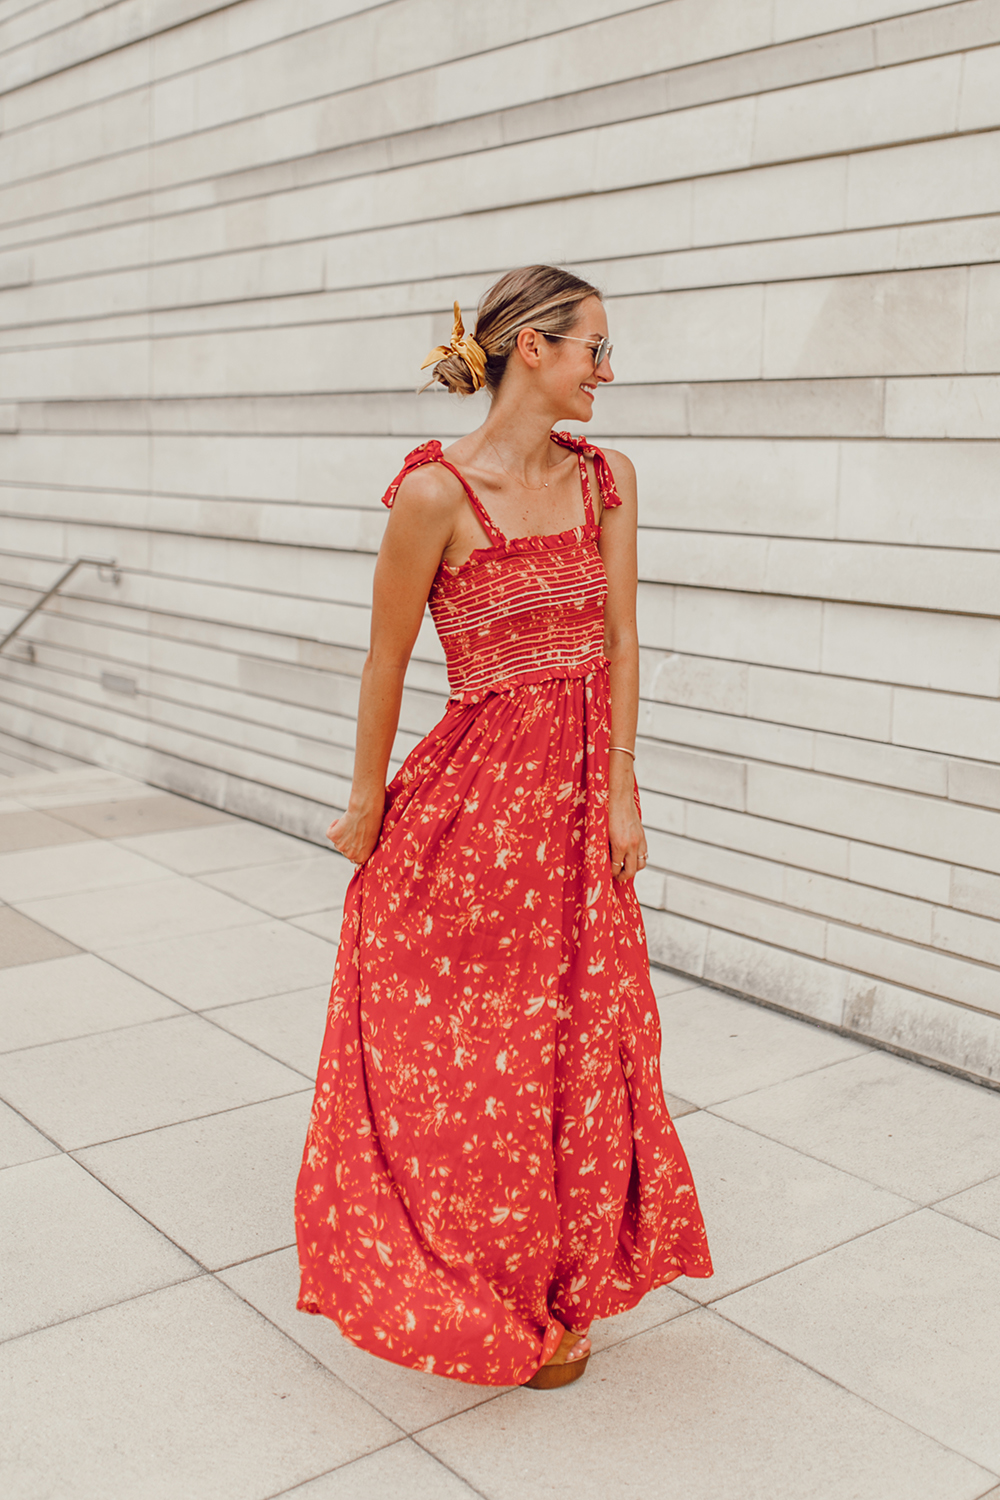 livvyland-blog-olivia-watson-austin-texas-fashion-style-blogger-free-people-red-maxi-dress-jumper-jumpsuit-summer-bbq-outfit-idea-6